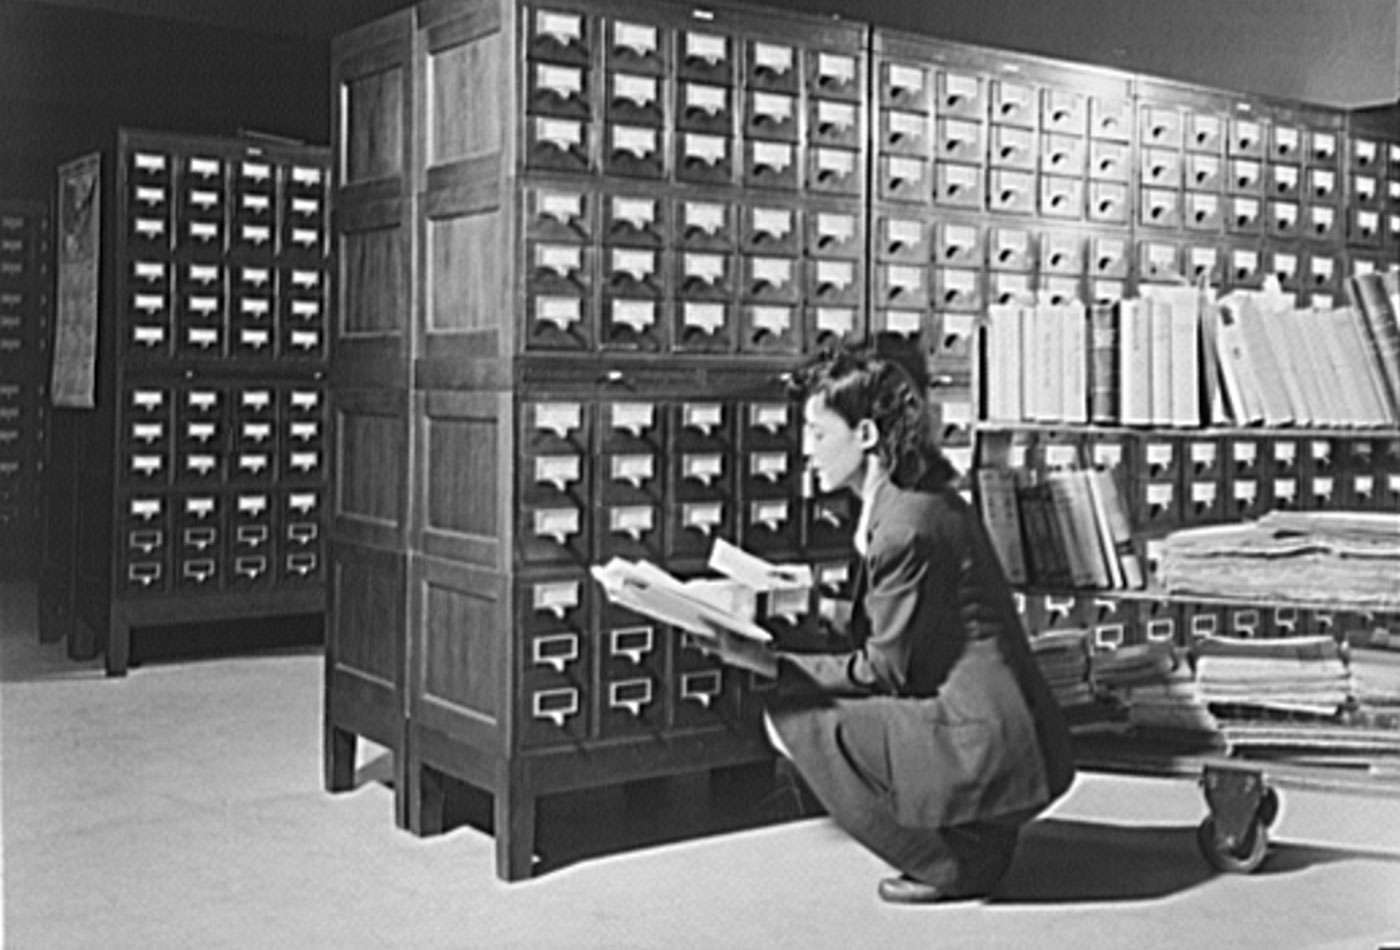 Card catalog at the Library of Congress